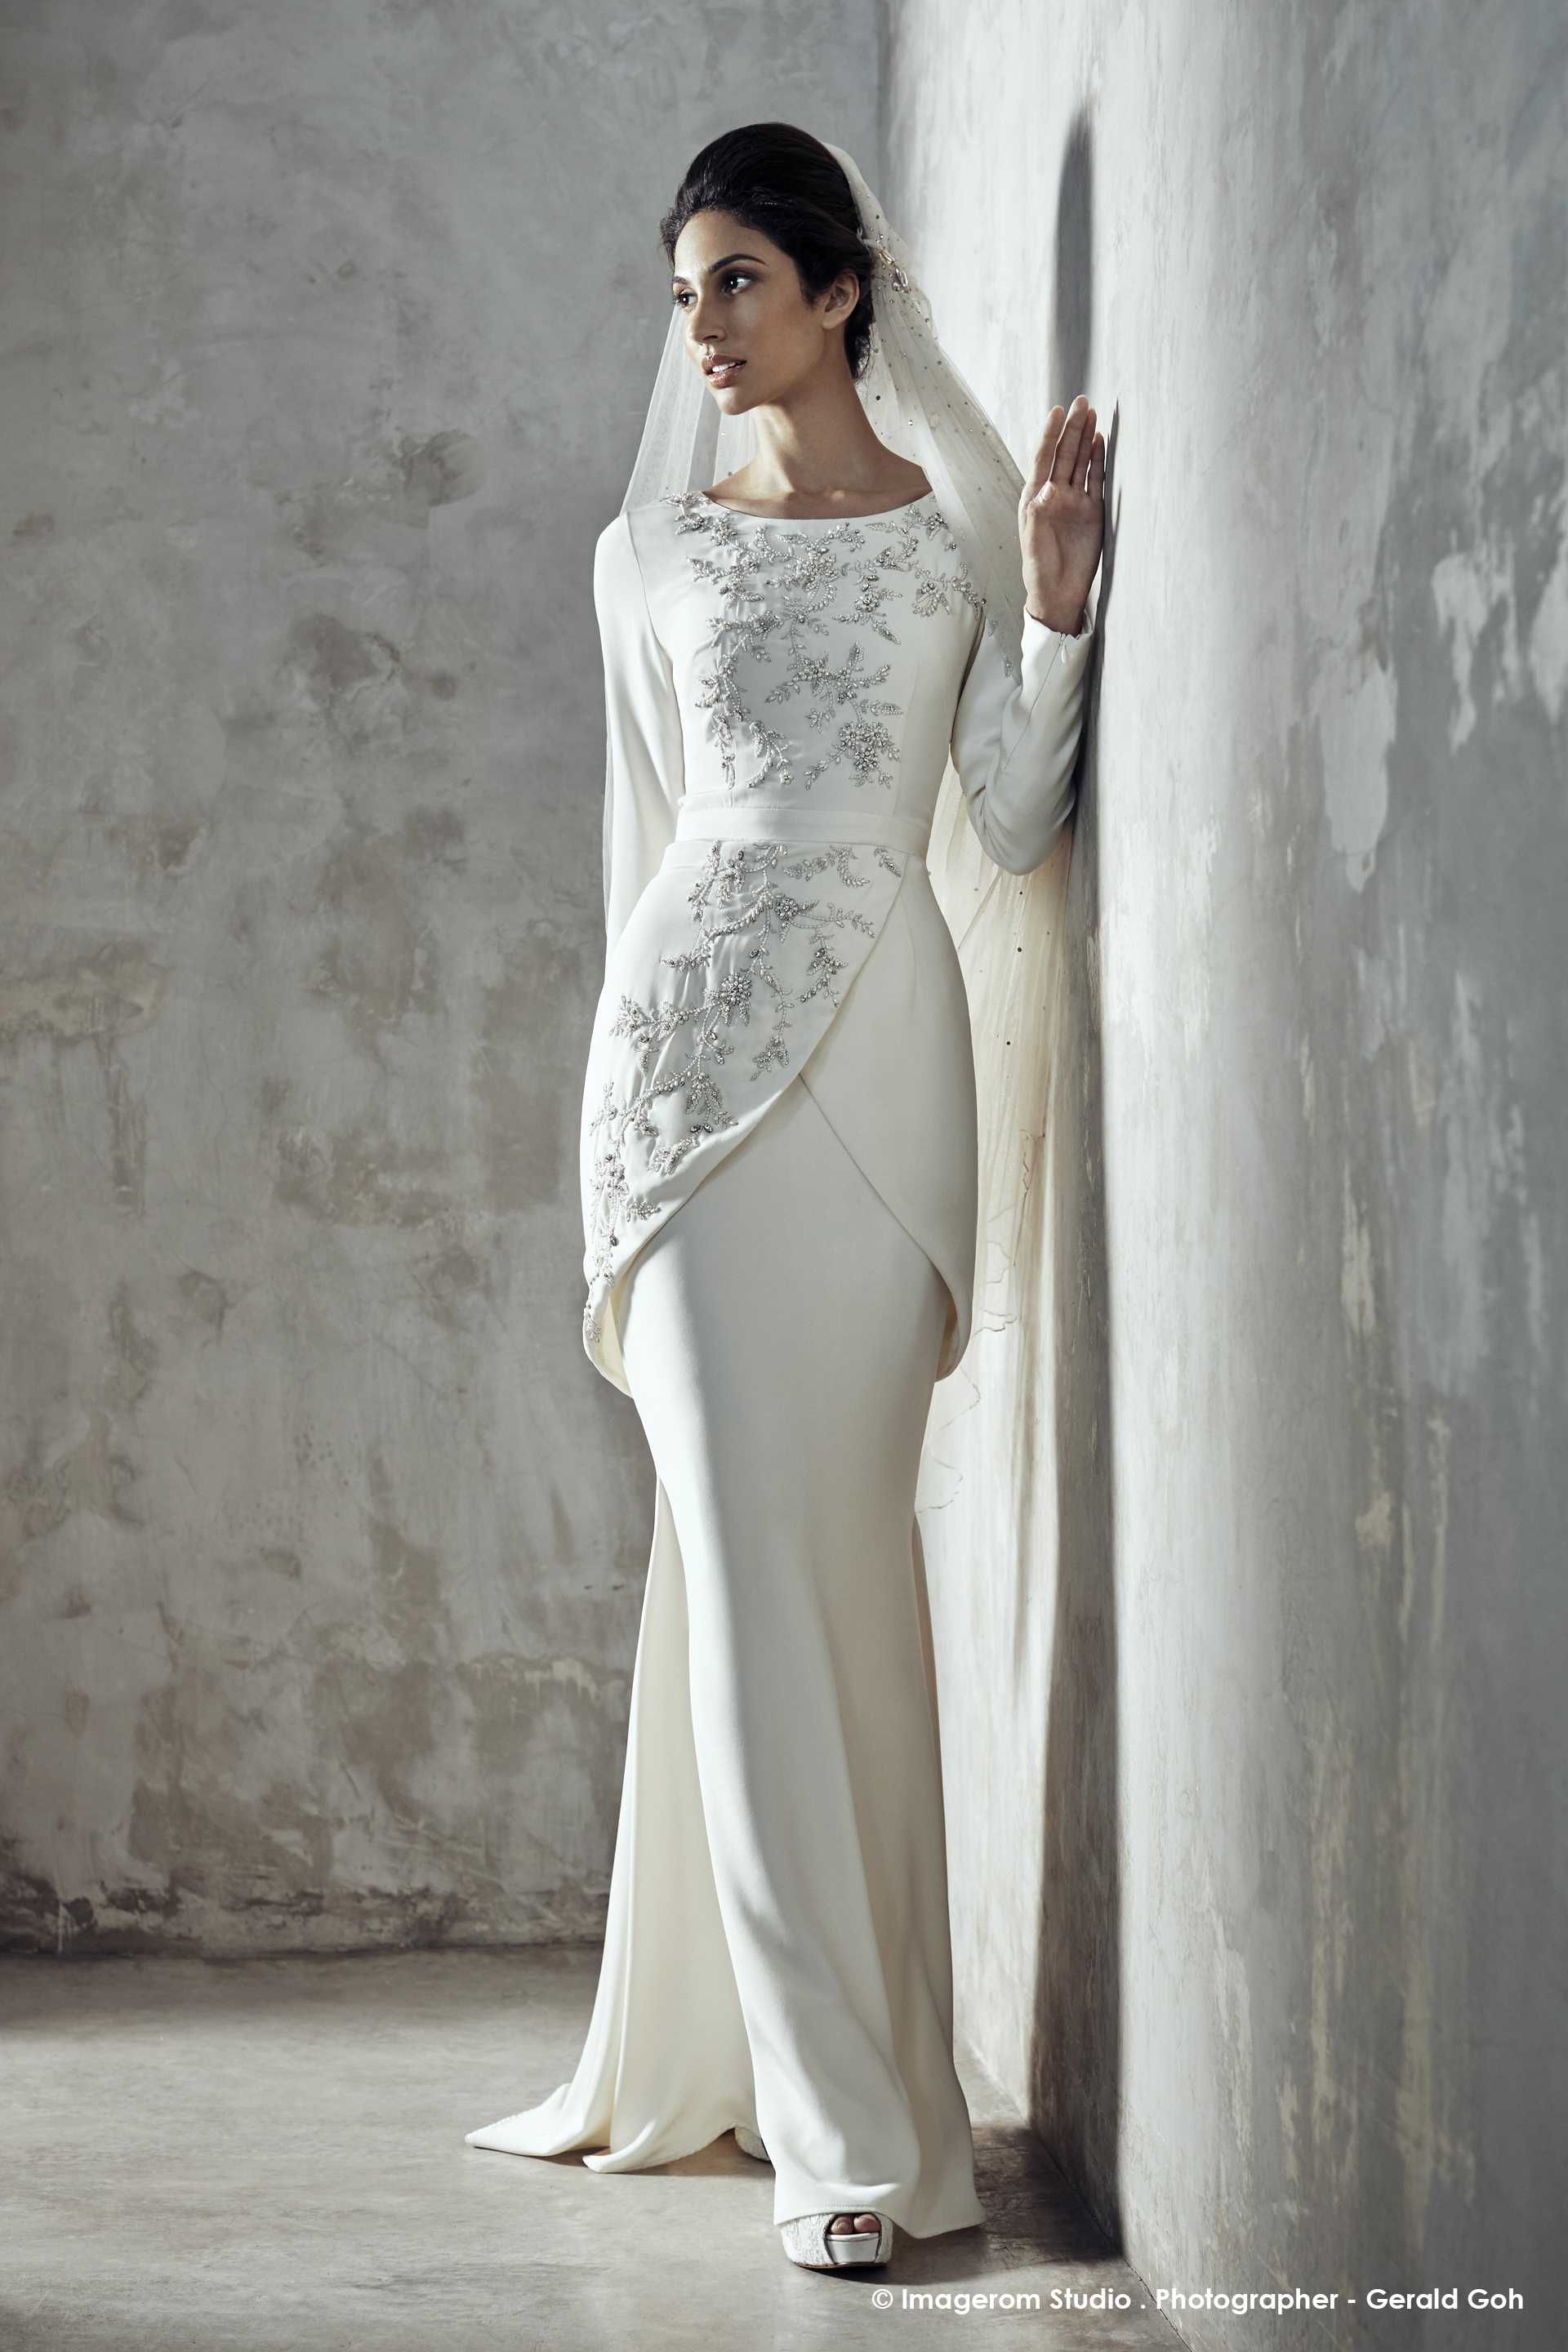 Fashion Designer Couture Bridal Ready To Wear Dresses Gowns Kuala Lumpur Malaysia